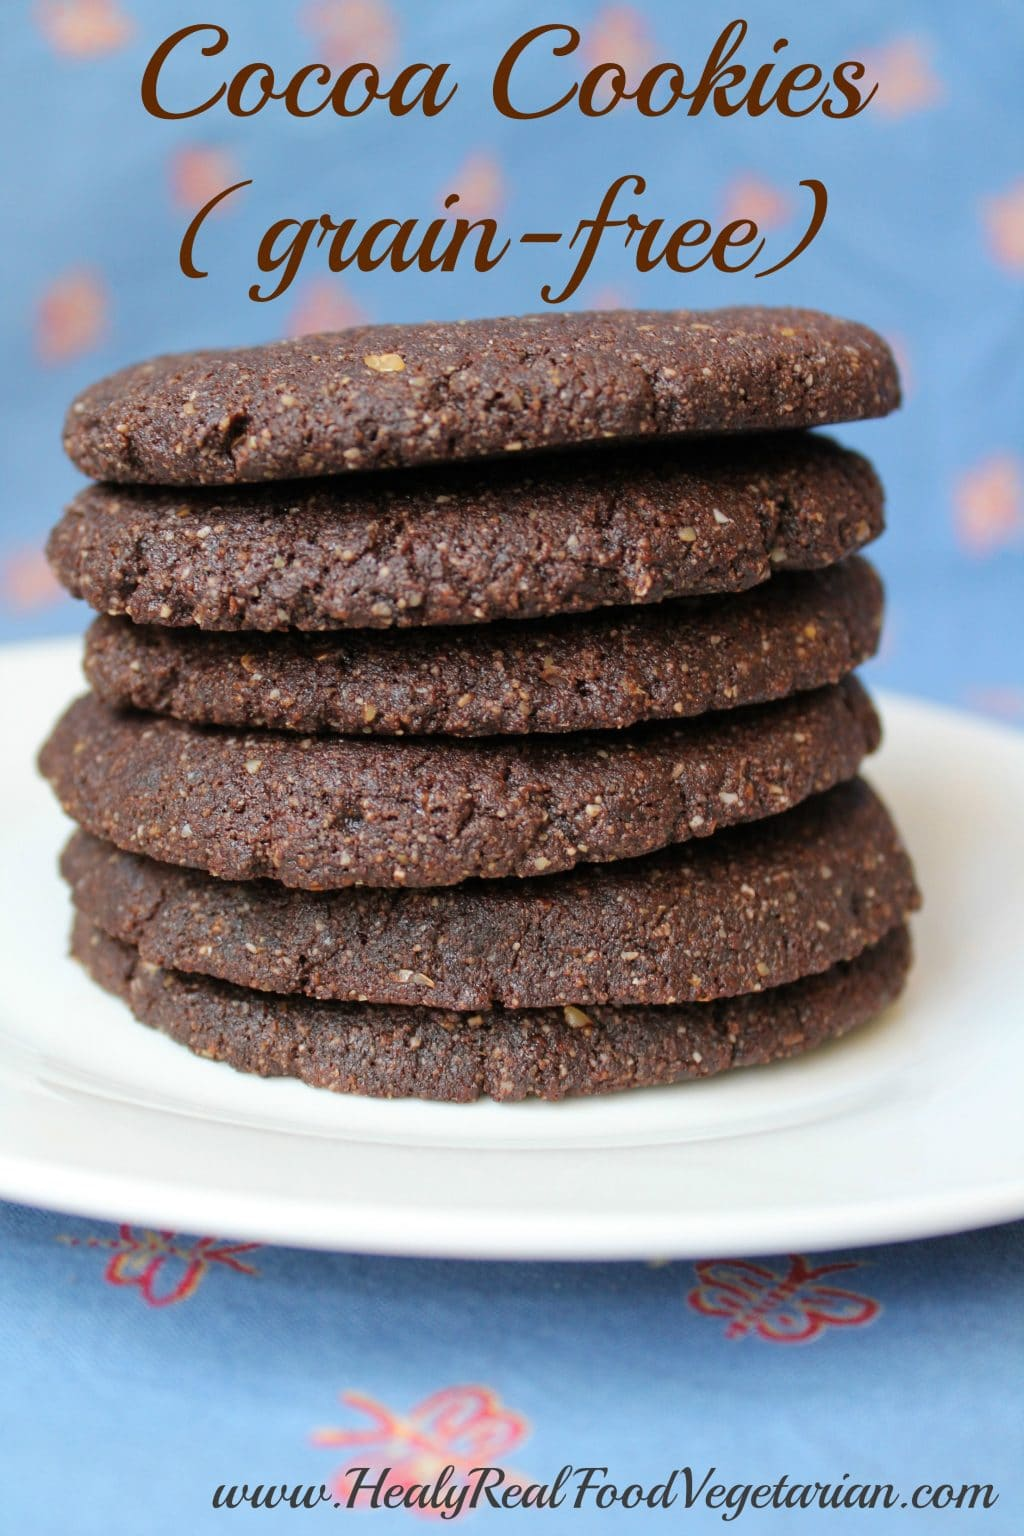 Cocoa Cookies (Paleo & Gluten Free)- These chocolatey cocoa cookies are like those big tasty cookies that you see at coffee shops that are just begging to be dipped into a cup of tea or coffee! These are grain-free and have a nice soft texture. Enjoy!